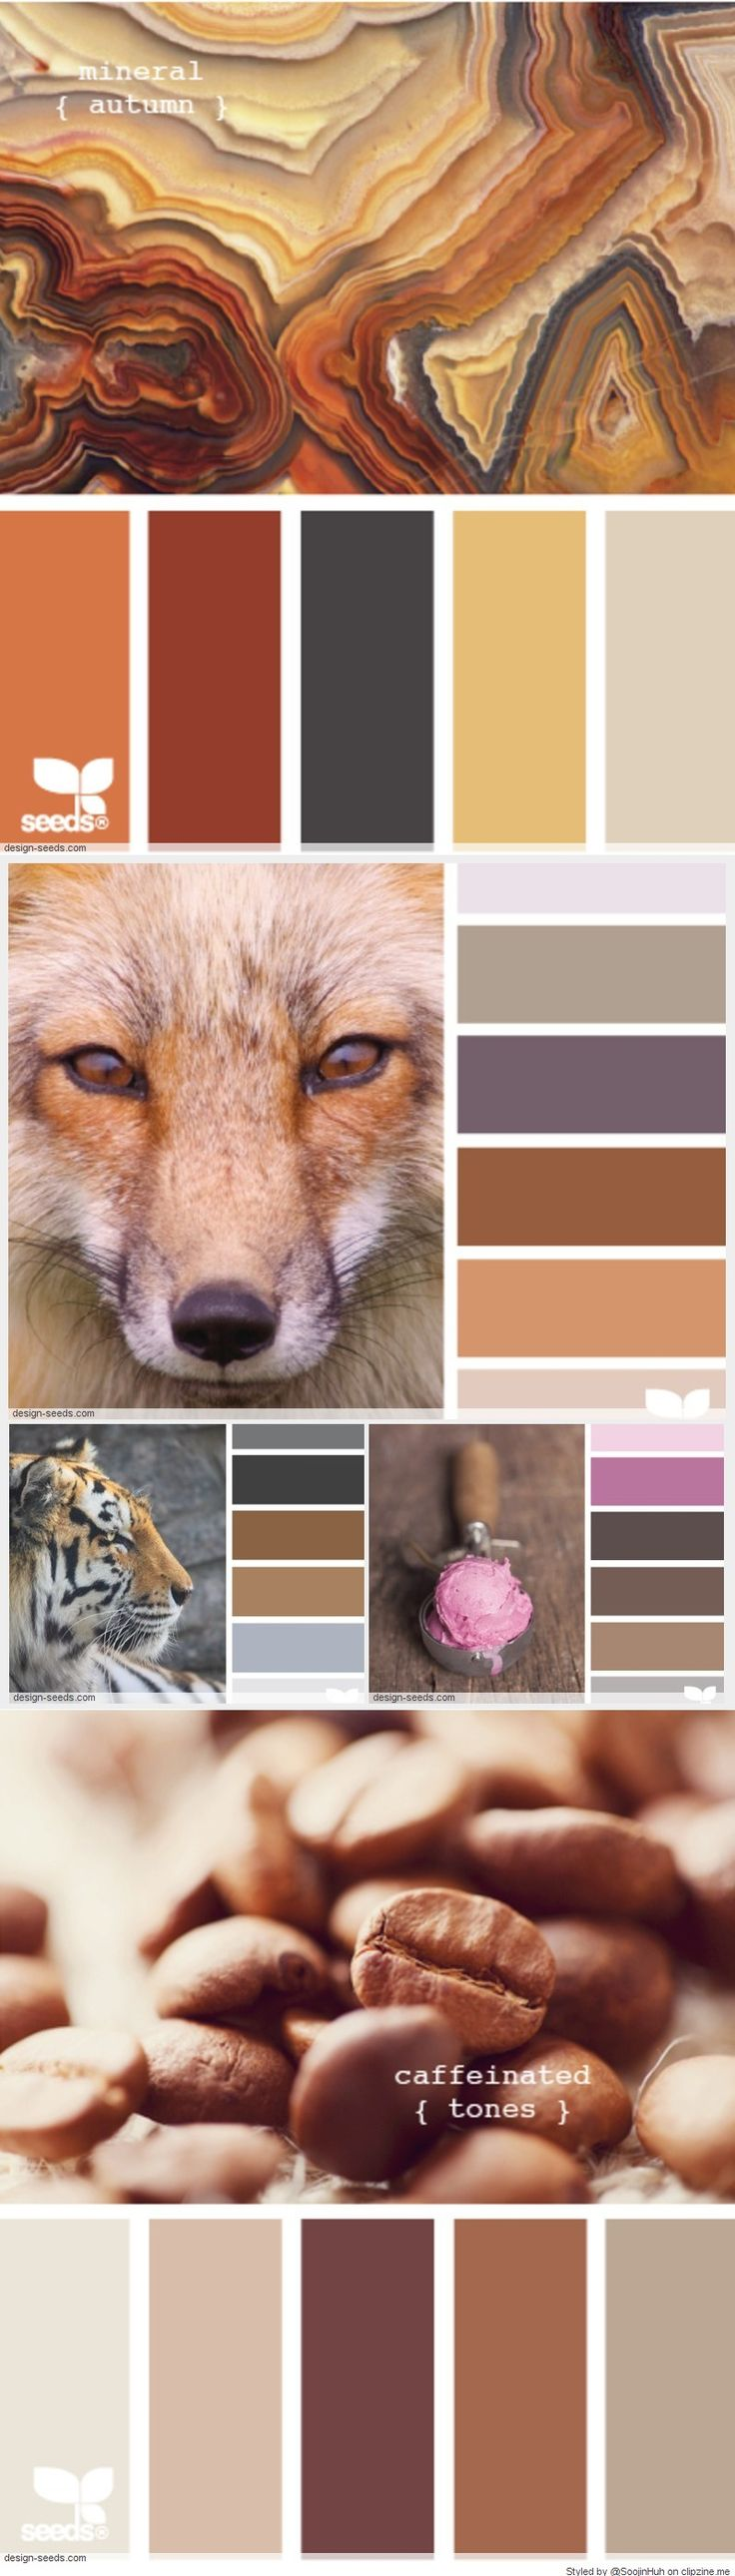 Warm Color Palette Mesmerizing Best 25 Warm Color Palettes Ideas On Pinterest  Warm Colors Review